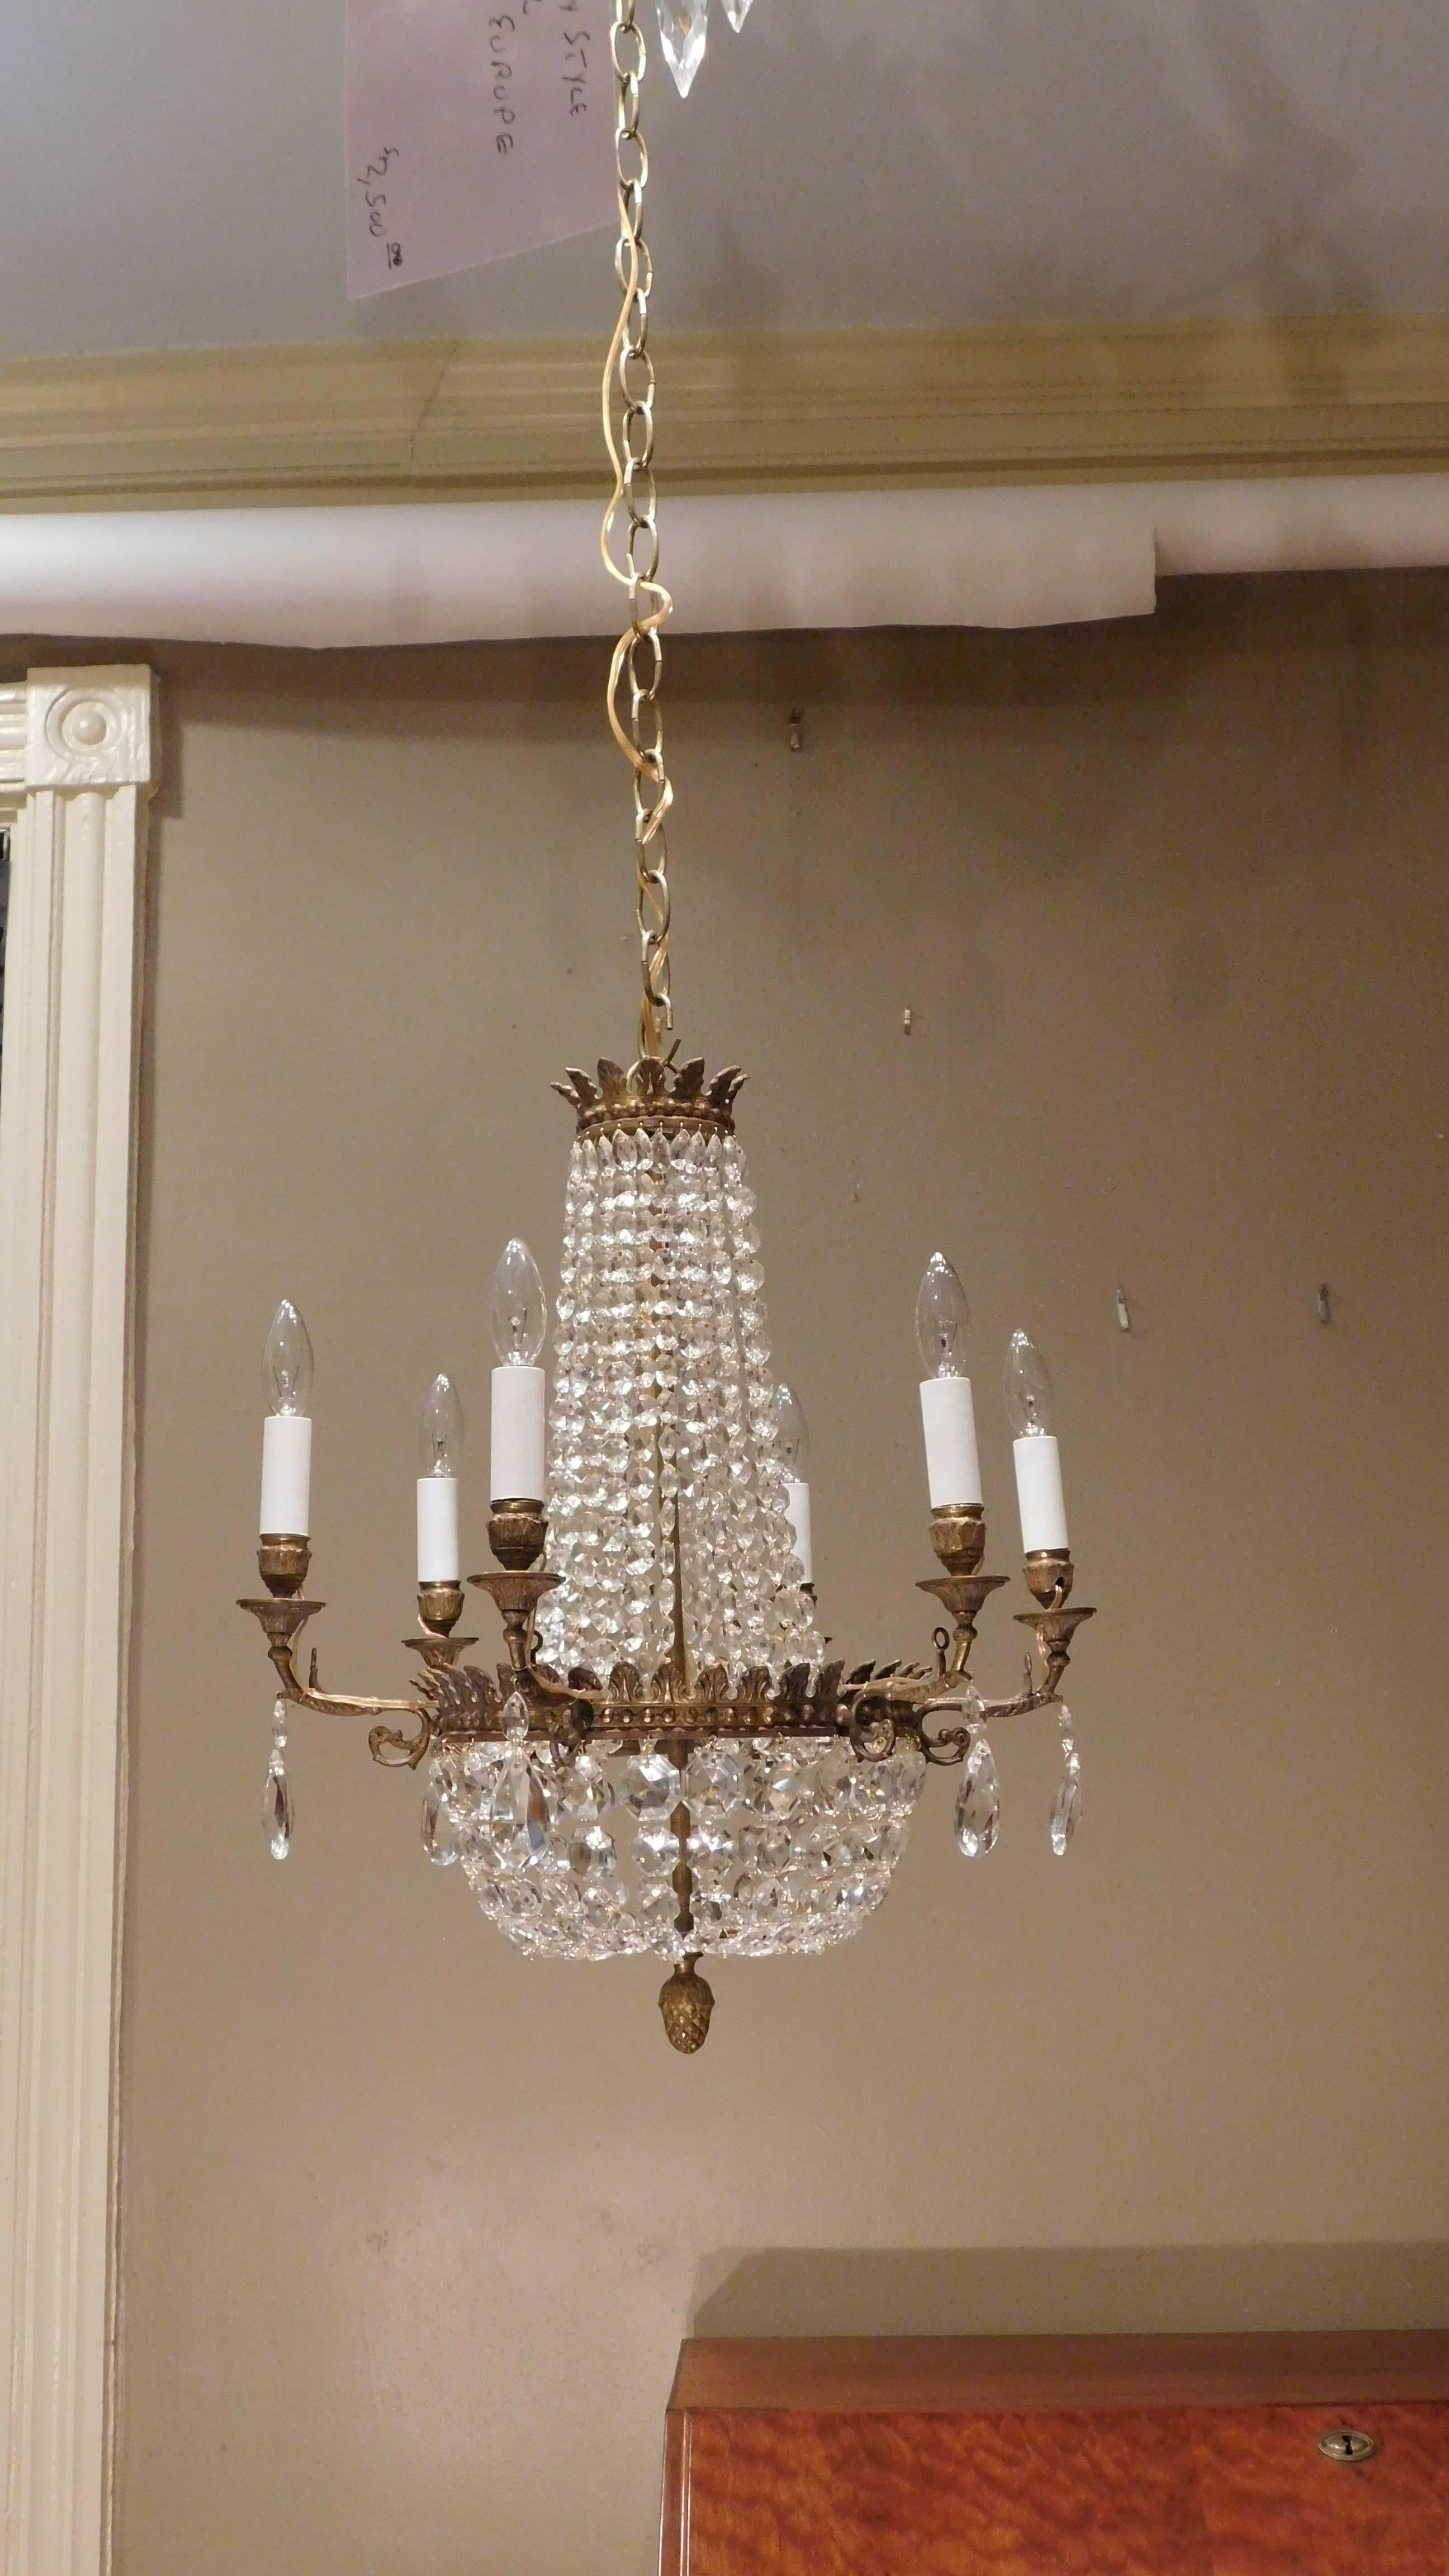 Pair of neo classic style six light bronze chandeliers france pair of neo classic style six light bronze chandeliers france circa 1890 for sale at 1stdibs aloadofball Image collections